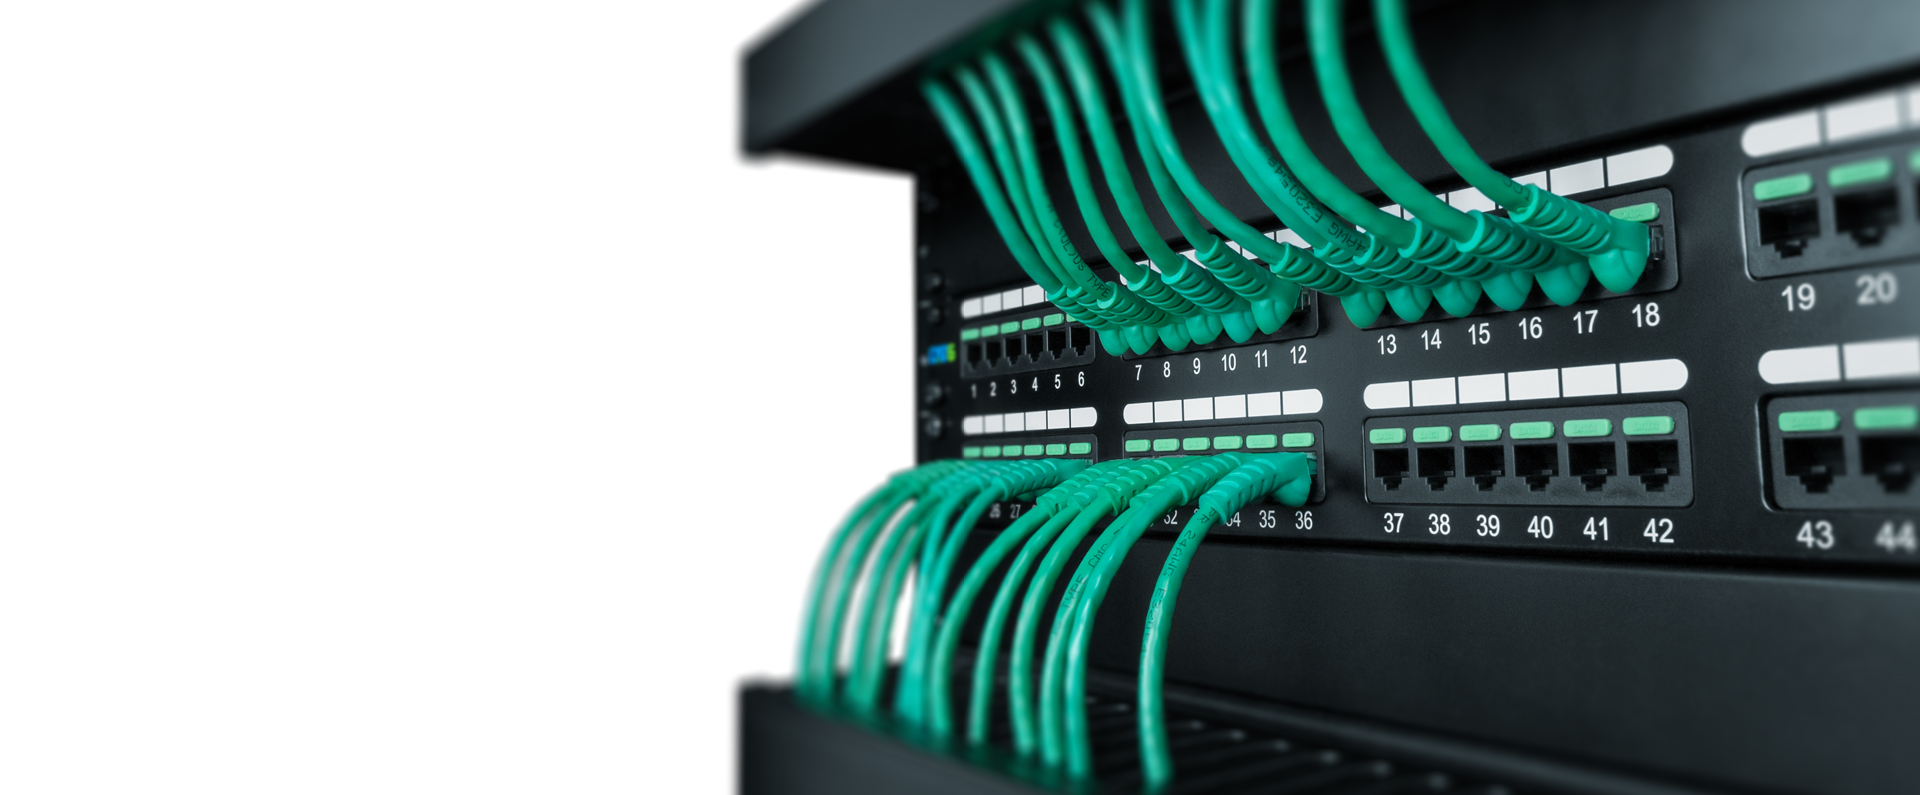 hight resolution of icc patch panels v7 jpg